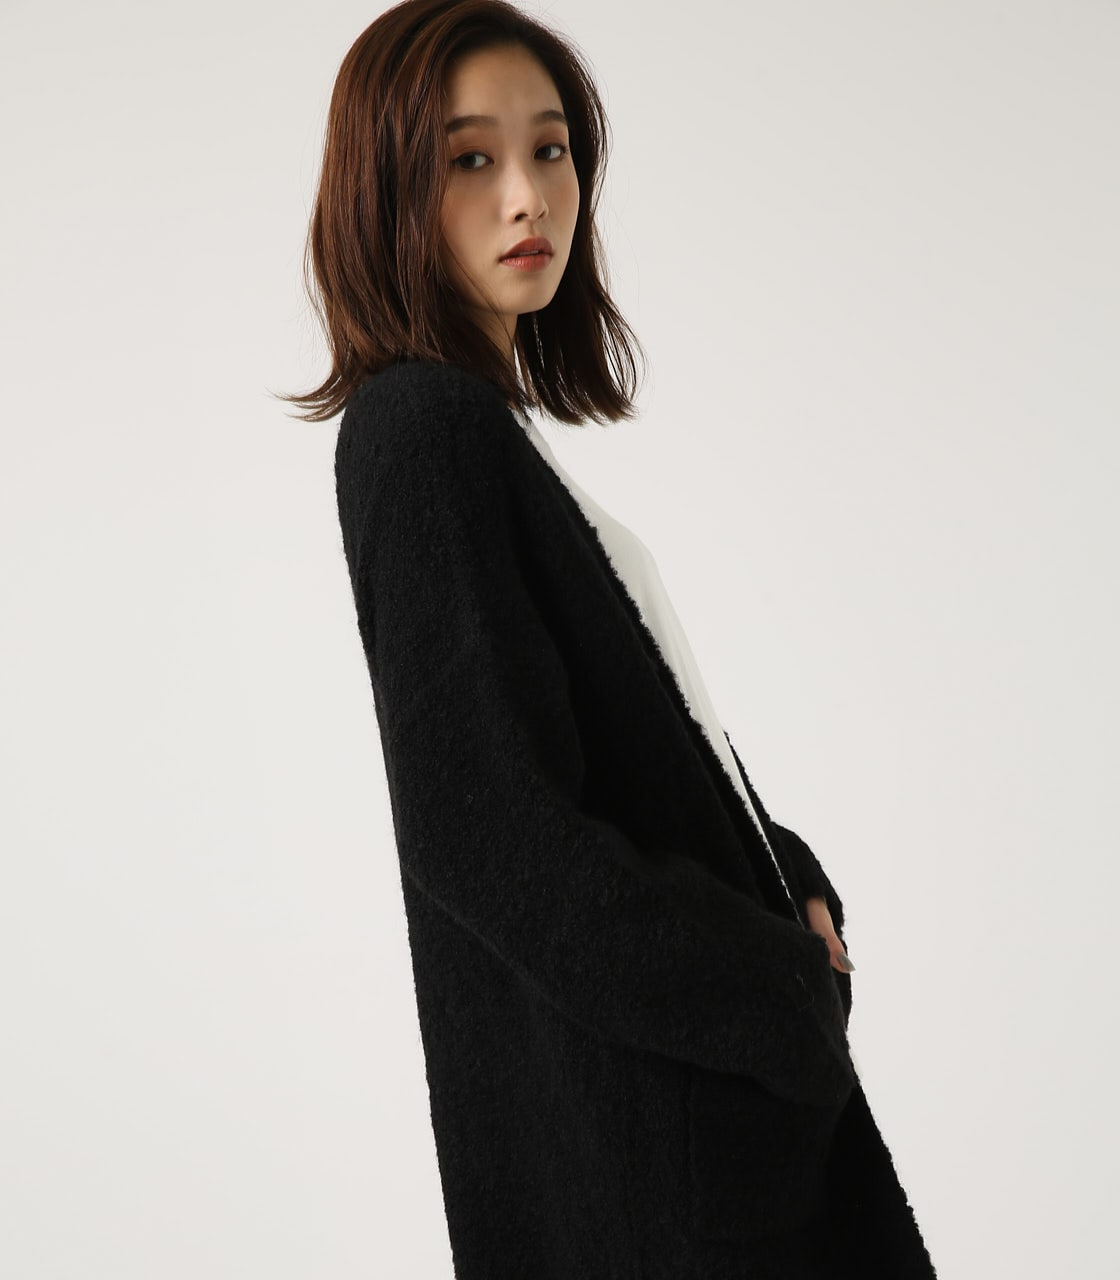 【AZUL BY MOUSSY】ブークレロングカーデ 詳細画像 BLK 2